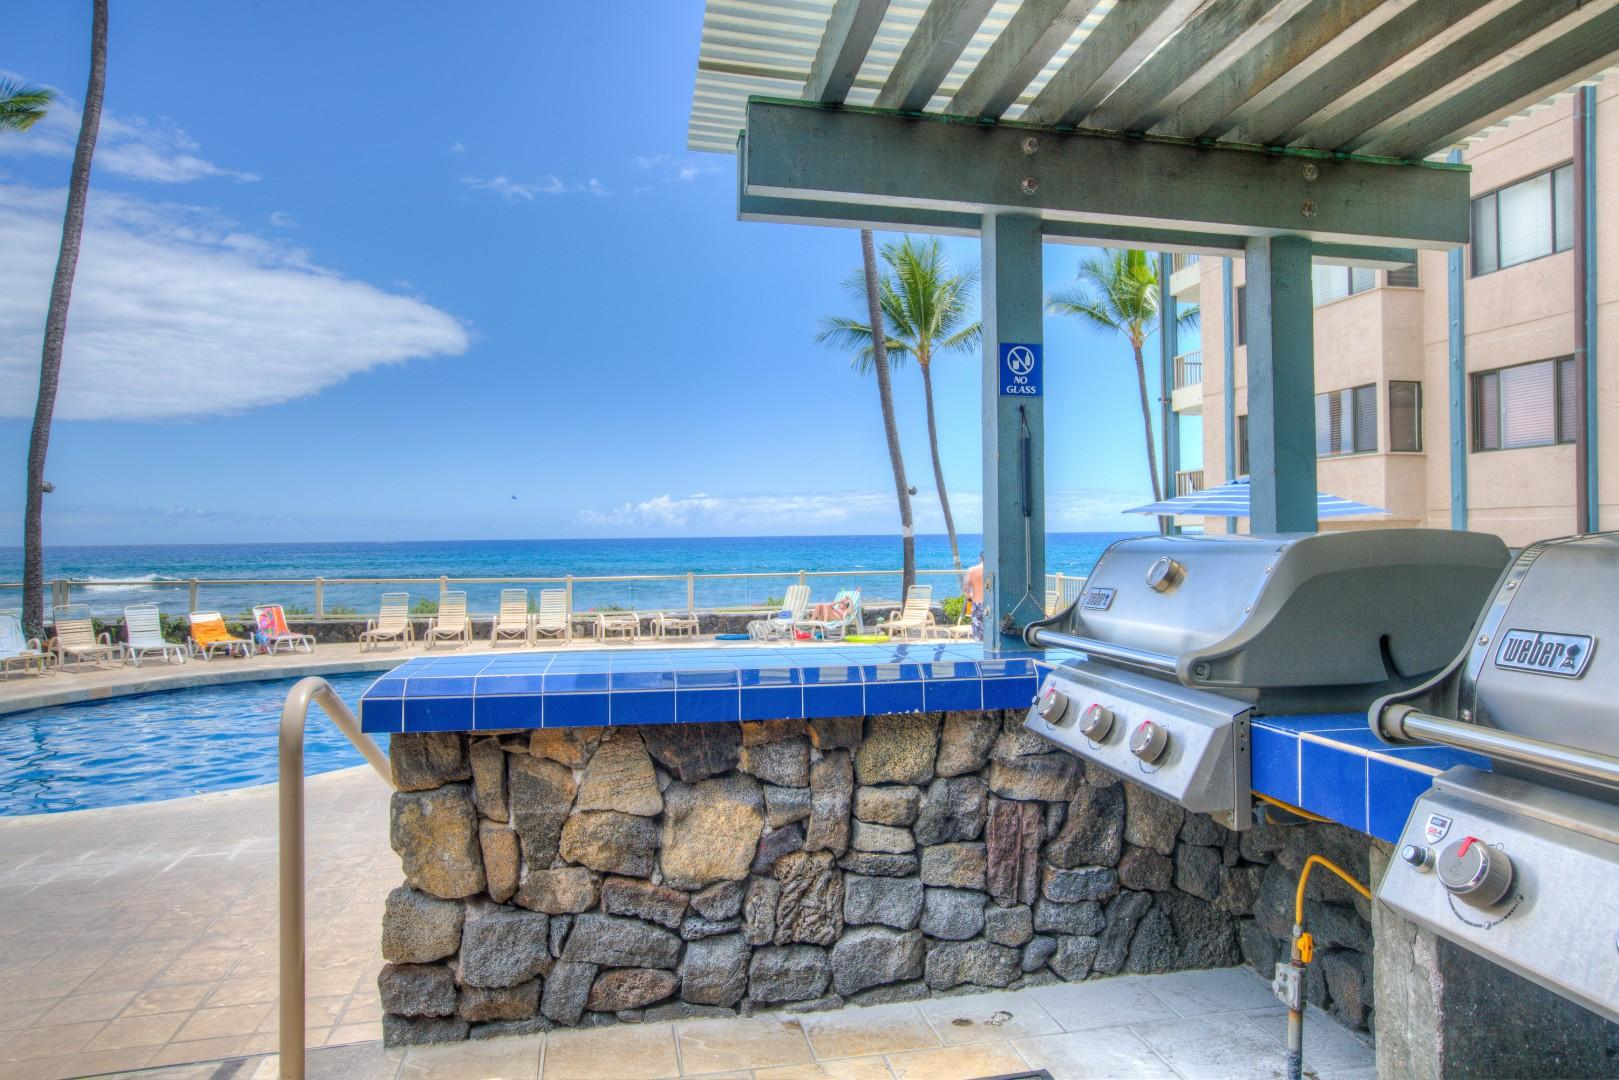 Lovely Oceanfront Pool Area with Spa and Barbecue Facilities.